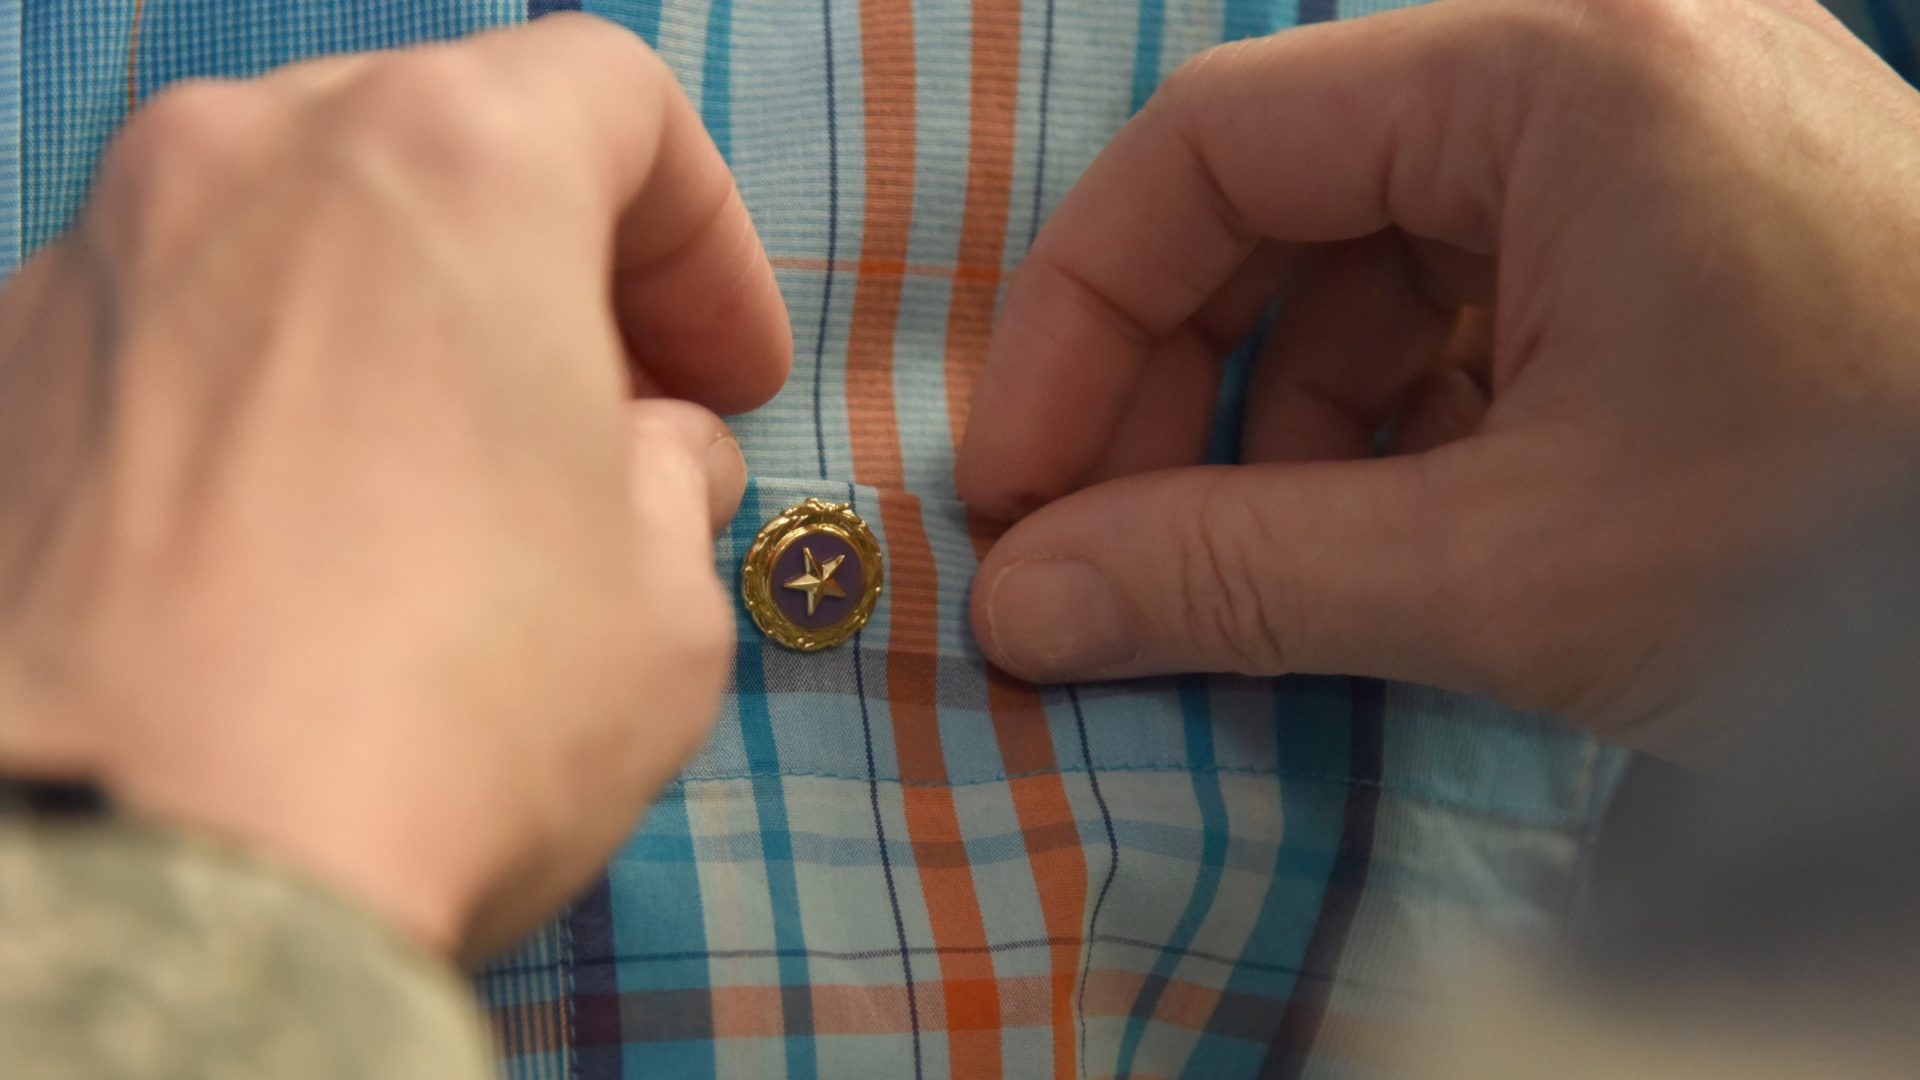 Fastening a gold star pin on a shirt